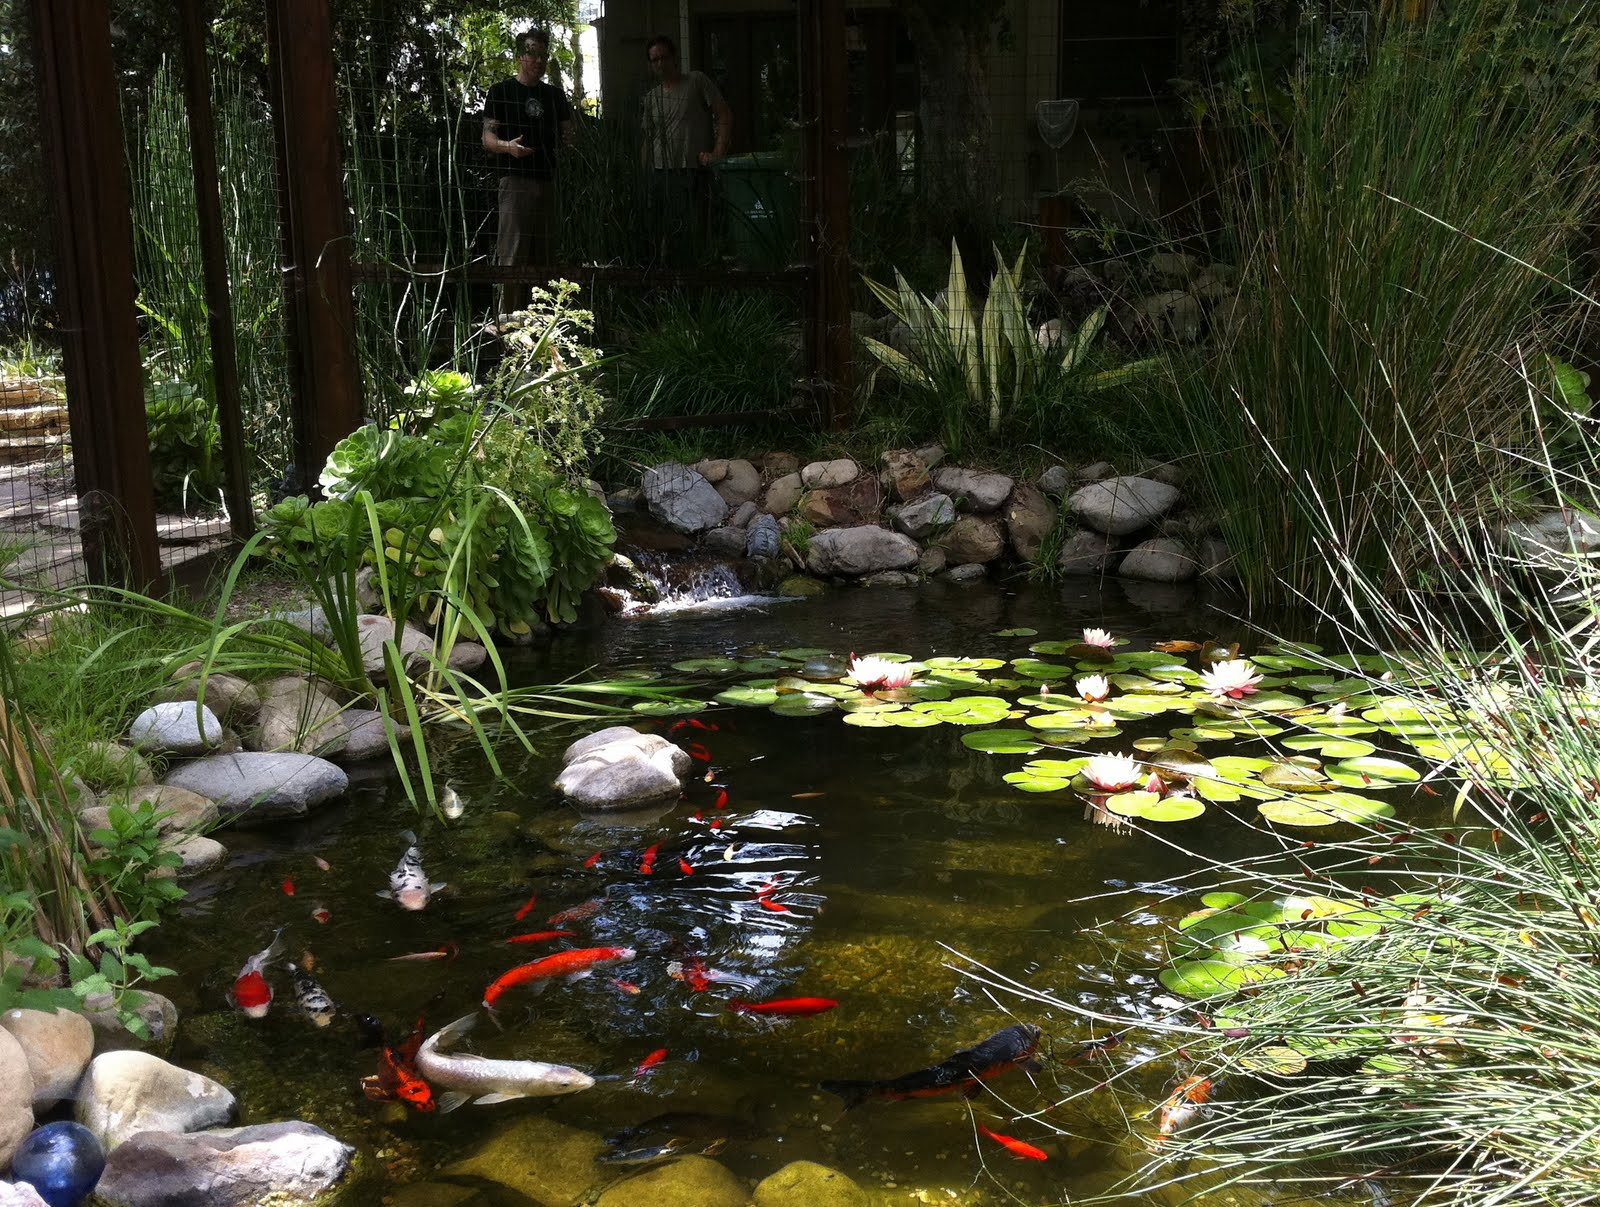 Elgin eco house garden serenity in the midst of the city for Outdoor koi pond